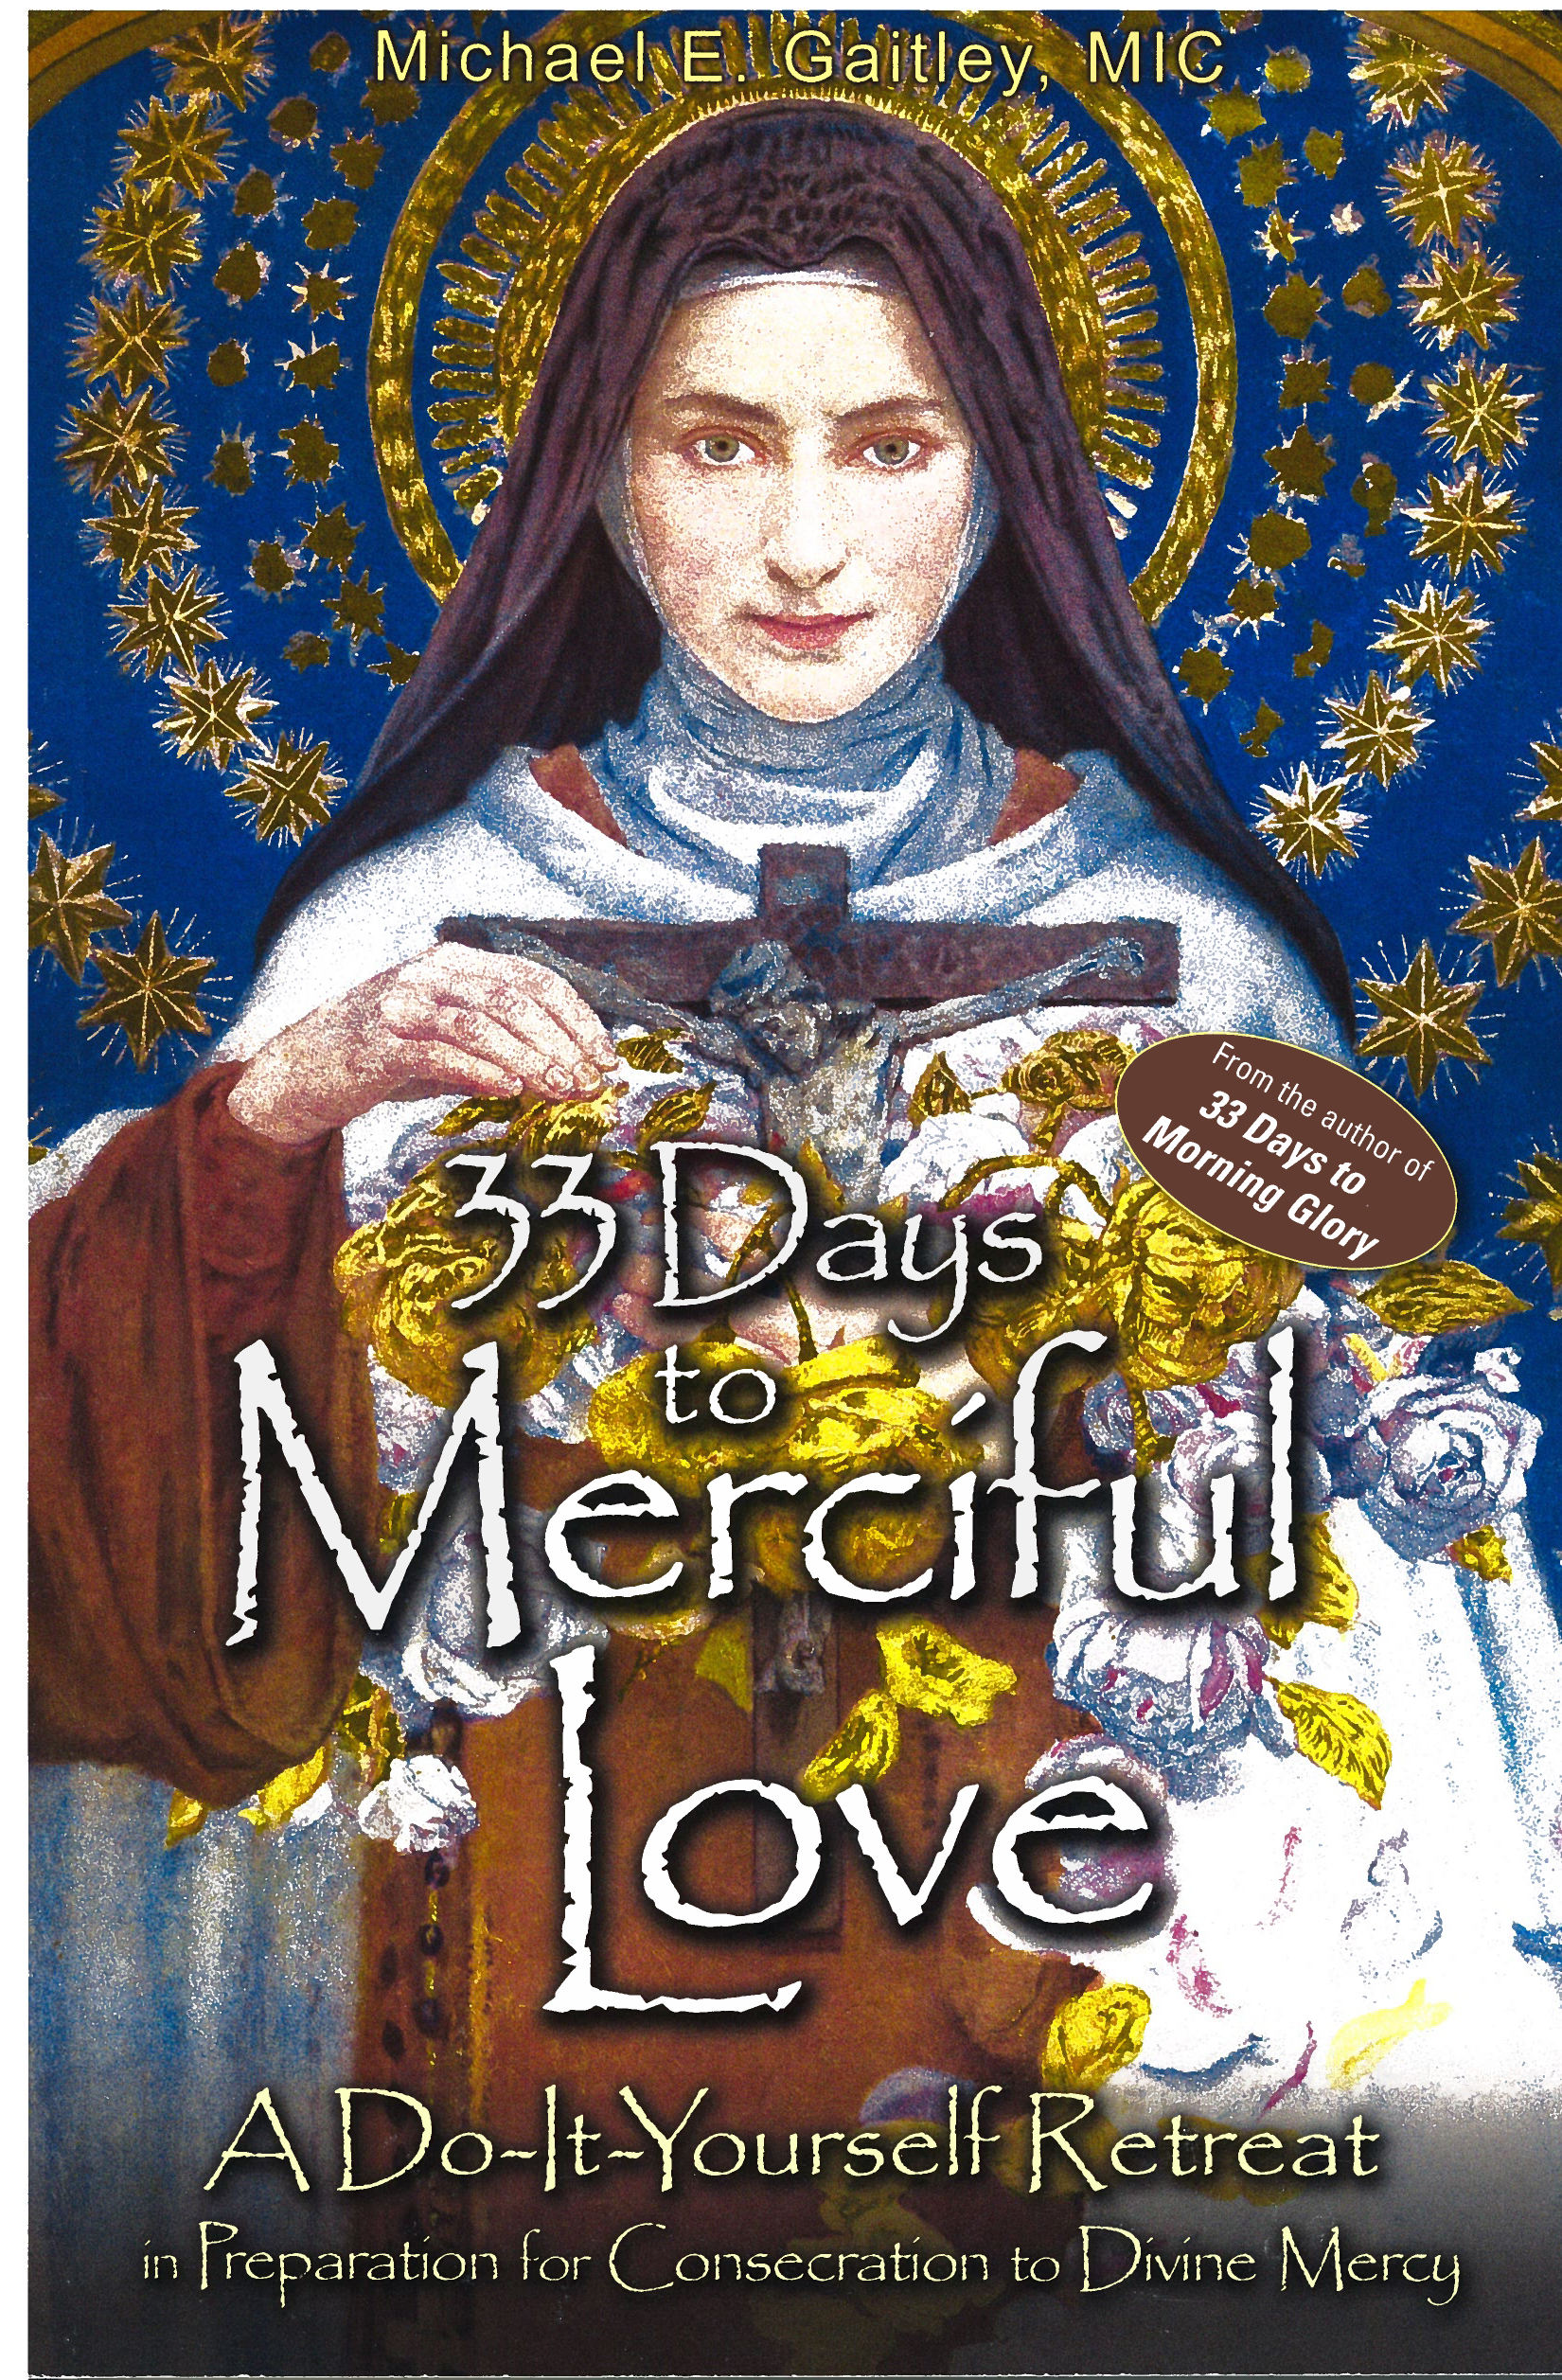 33 Days to Merciful Love by Michael E. Gaitley, 108-9781596143456